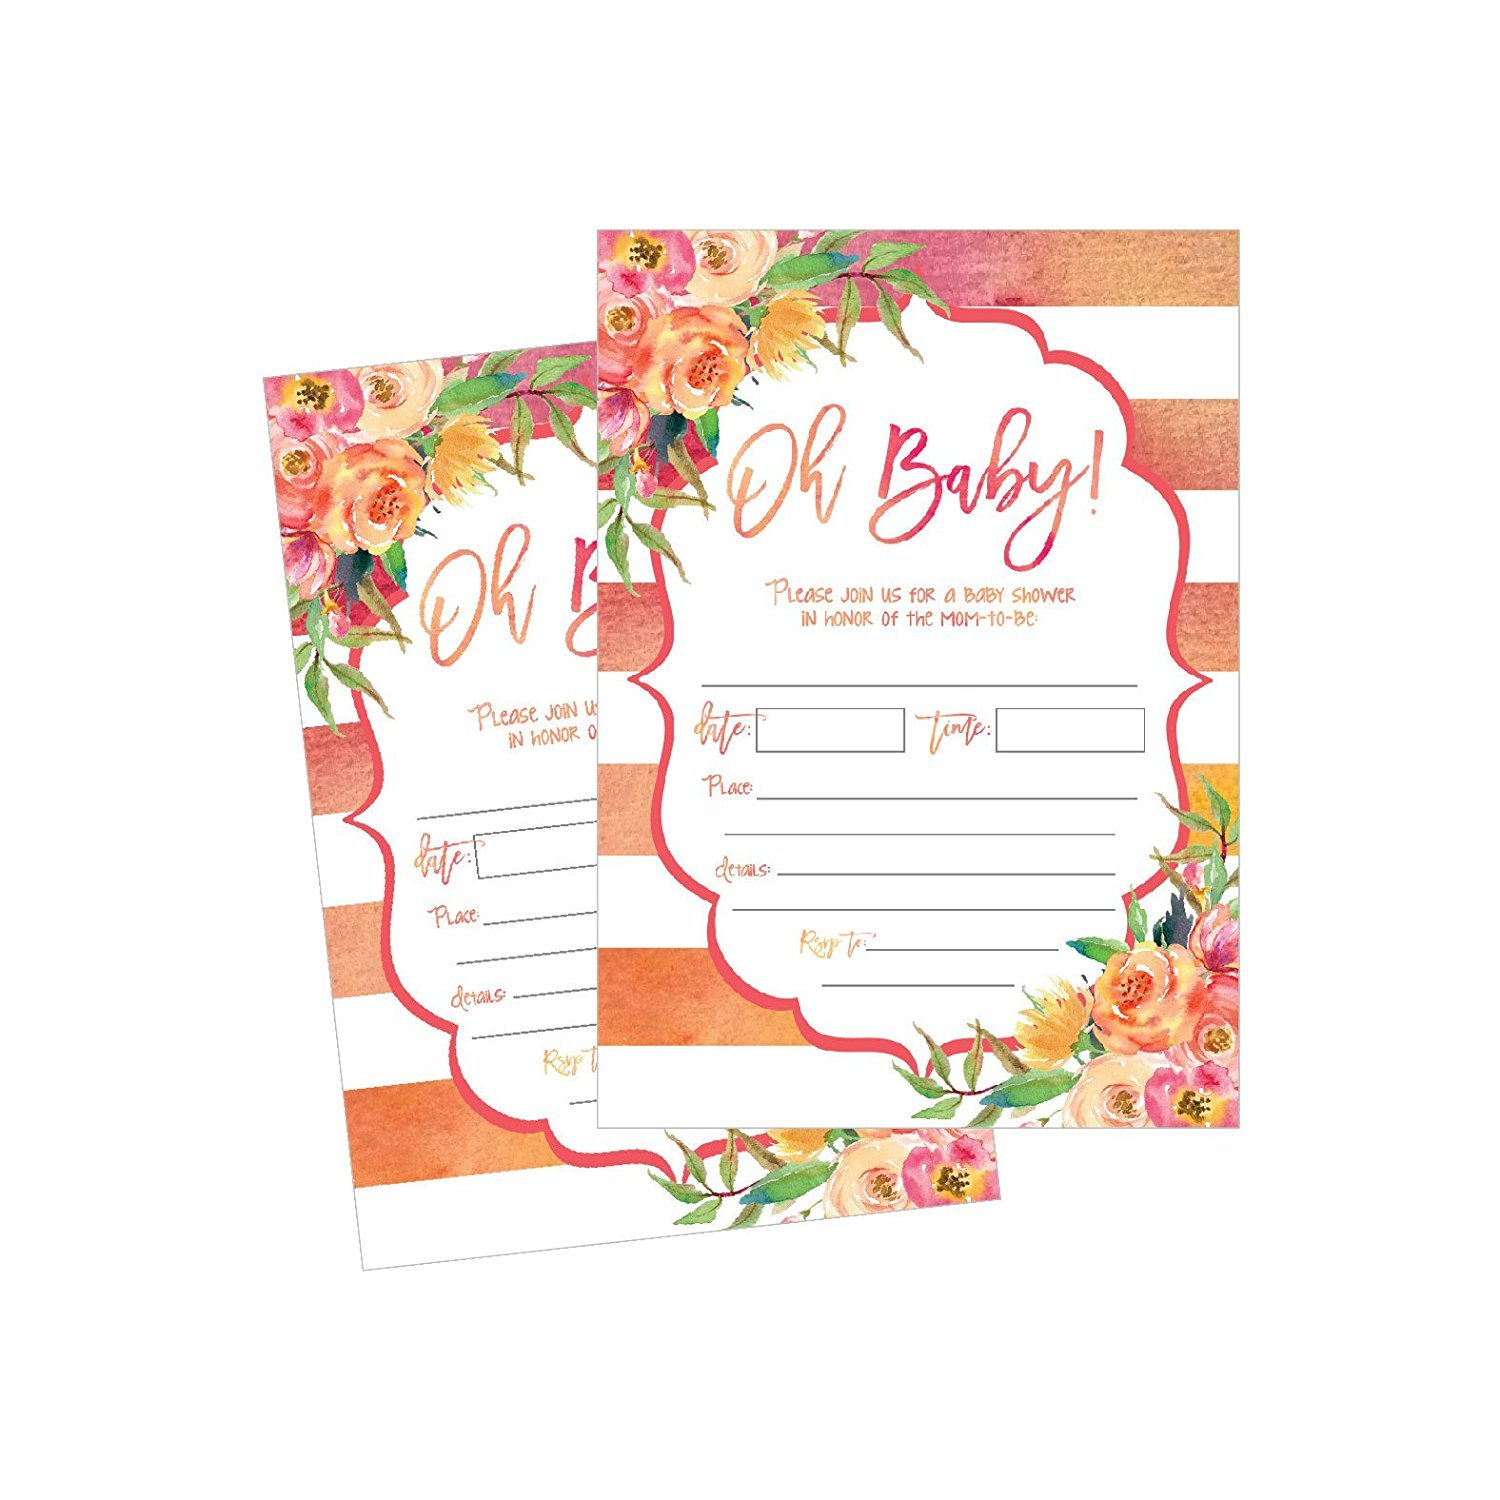 50 Fill In Cute Baby Shower Invitations Baby Shower Invitations Floral Pink And Gold Neutral Blank Baby Shower Invites For Girl Baby Invitation Cards Printable Walmart Com Walmart Com